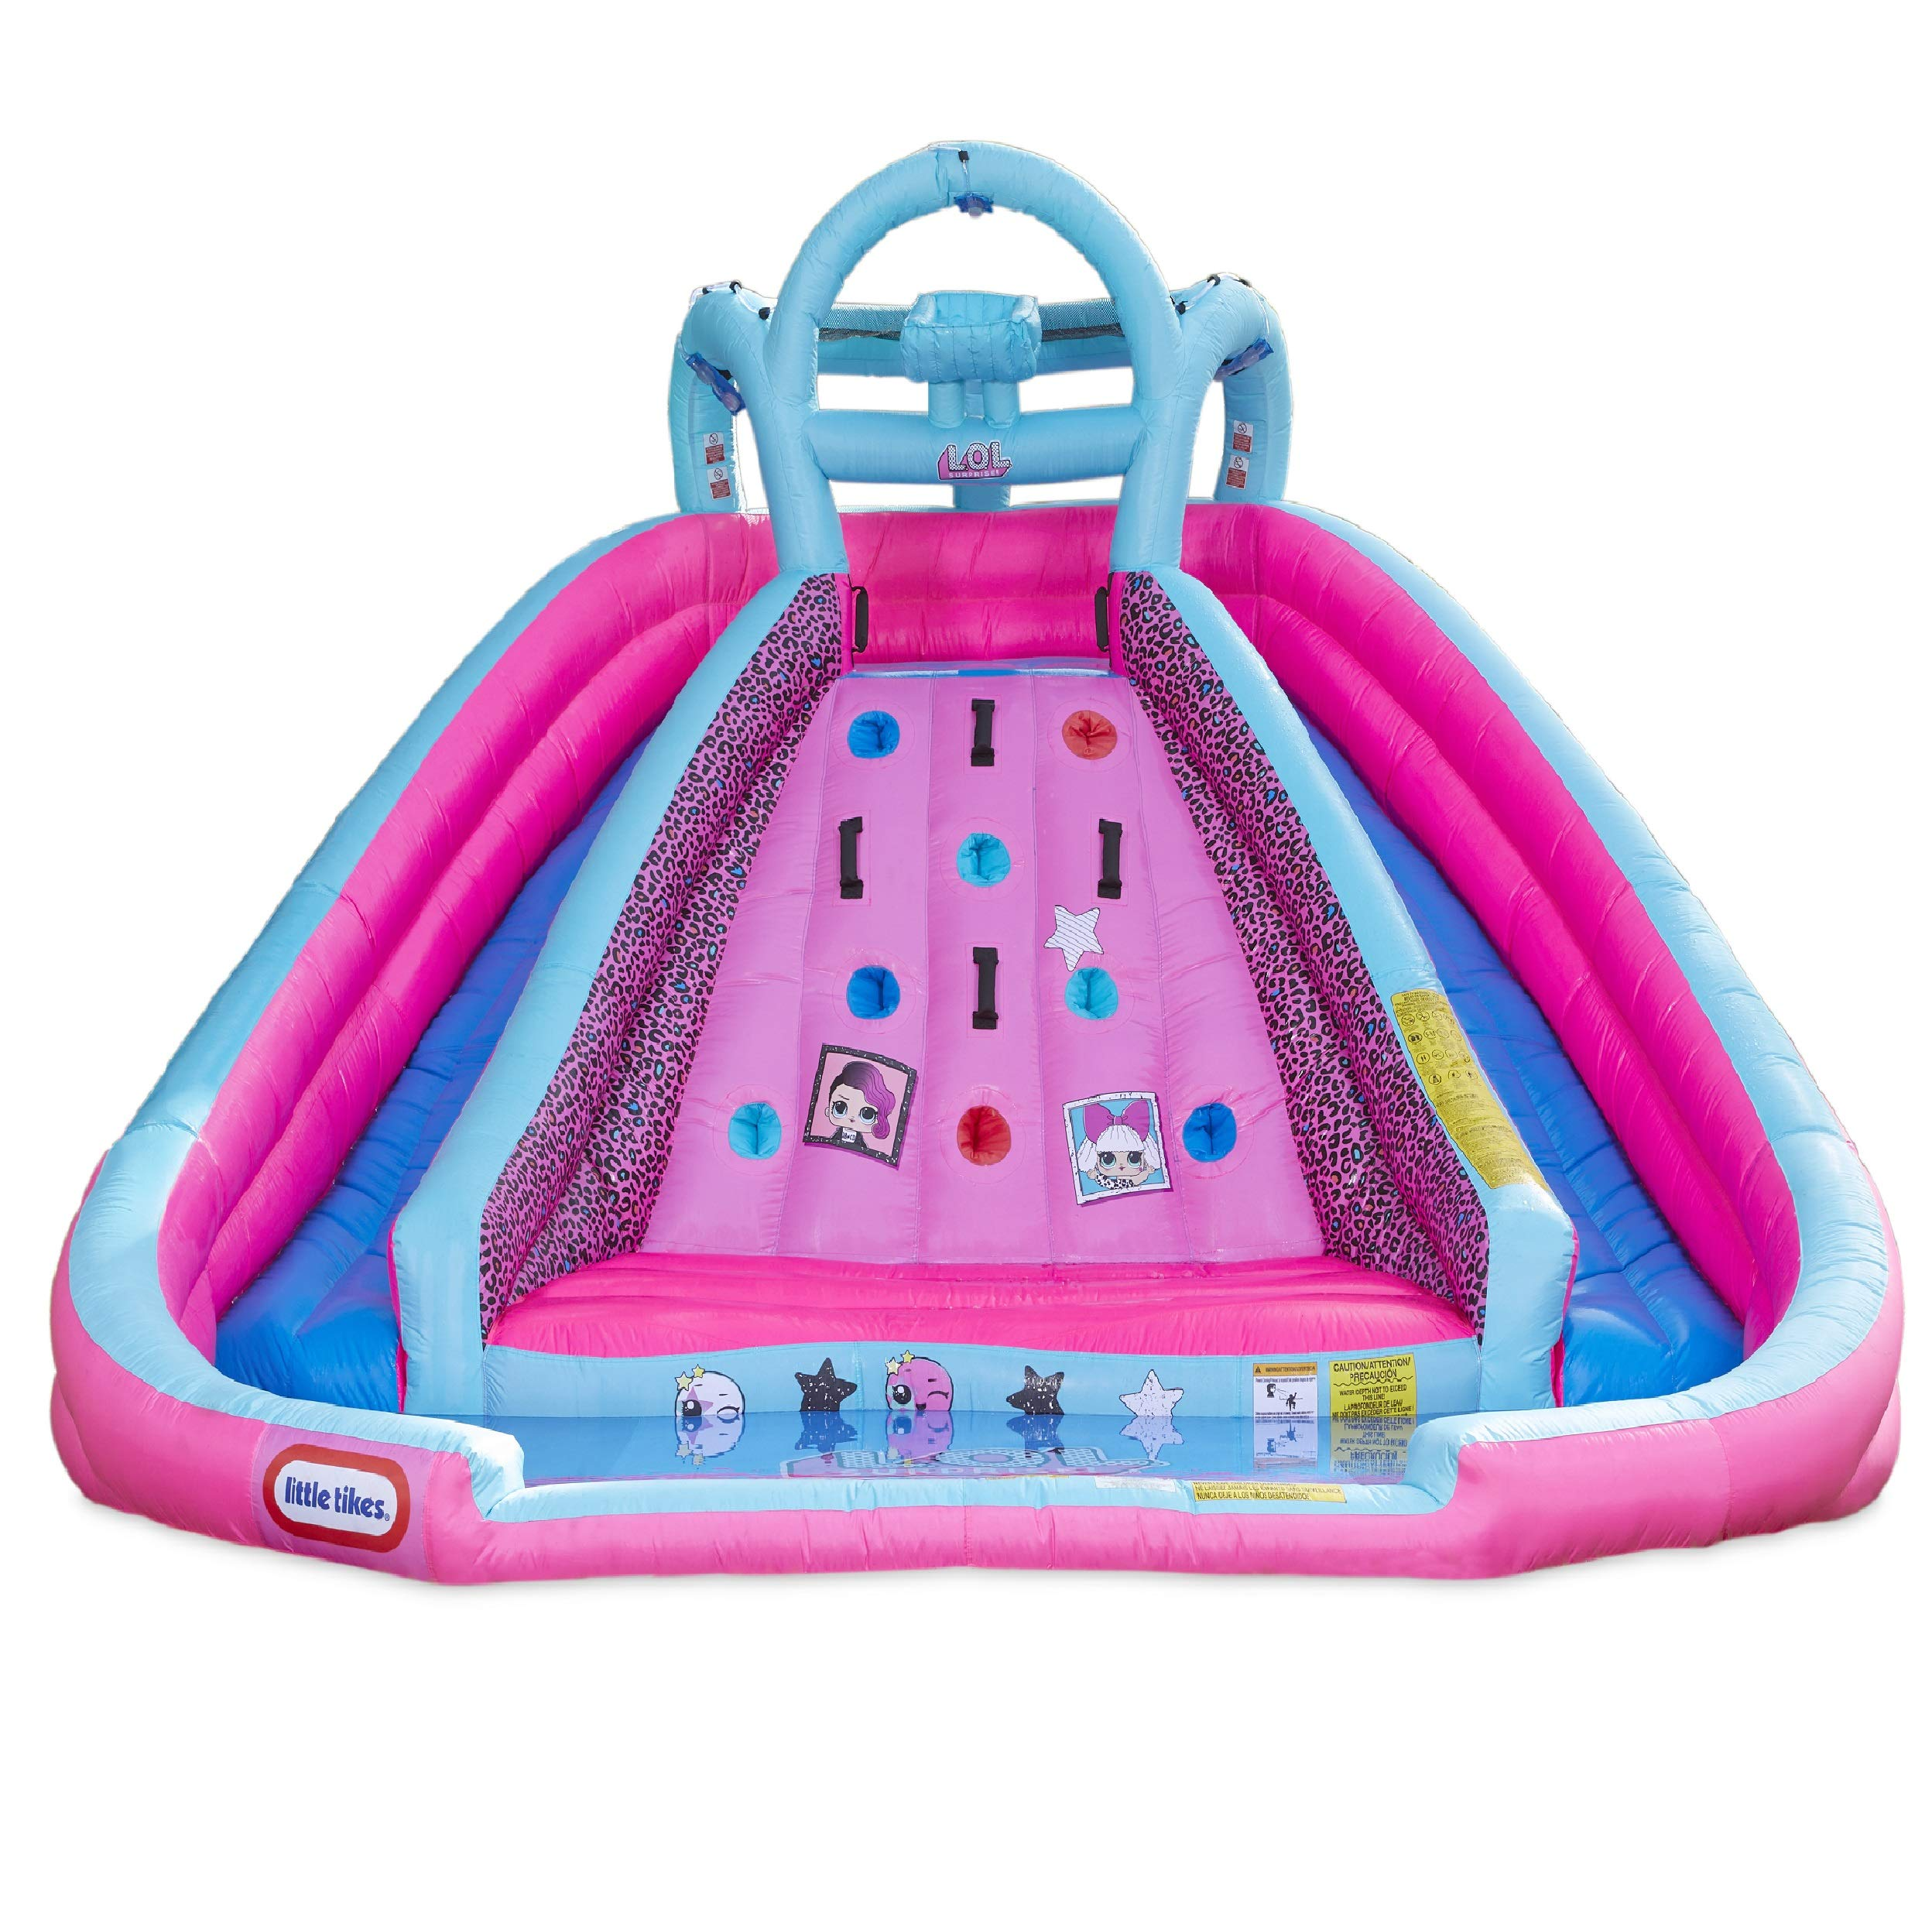 L.O.L. Surprise Inflatable River Race Water Slide with Blower by Little Tikes (Image #1)